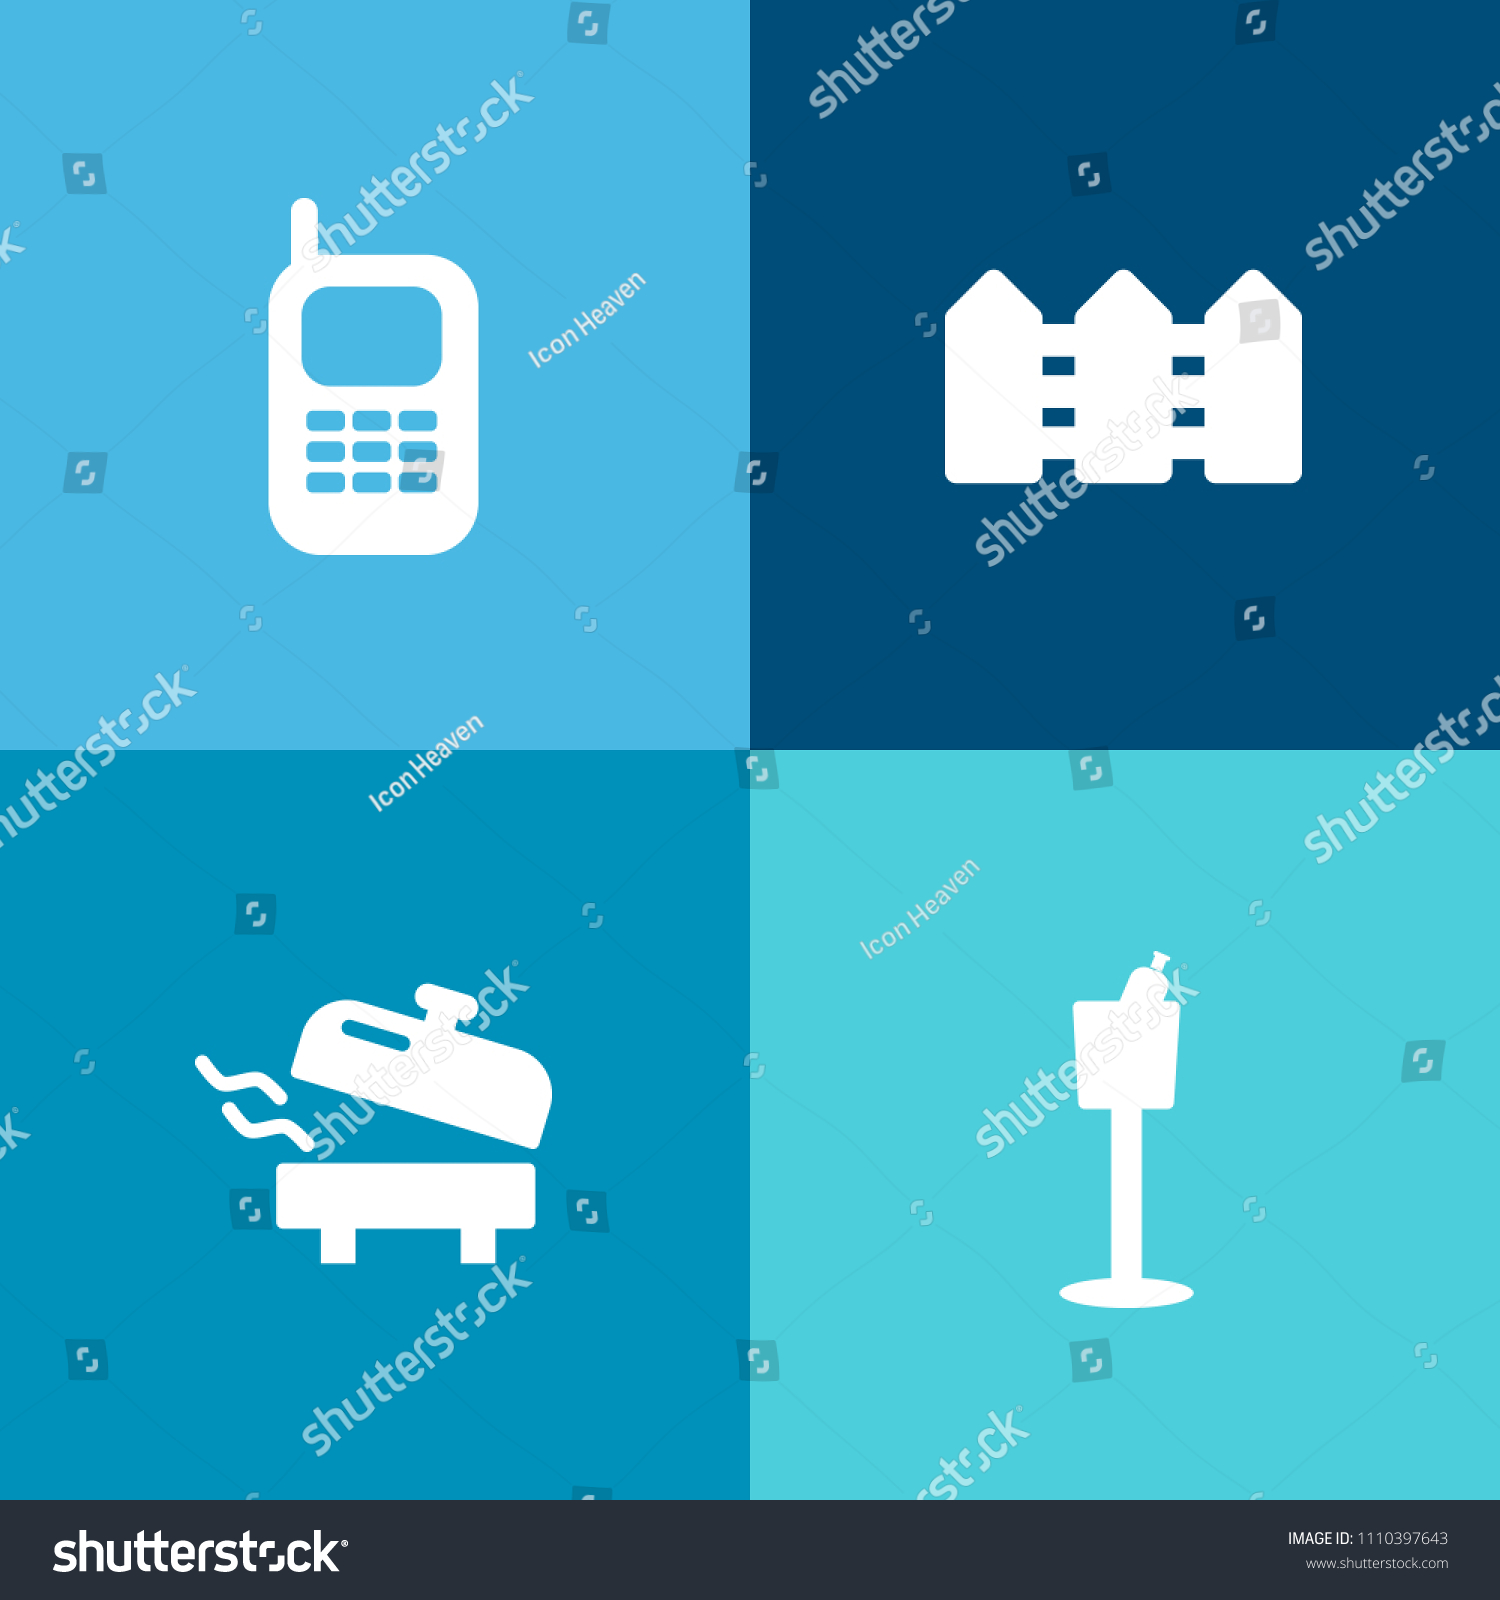 Modern Simple Vector Icon Set On Stock Vector (Royalty Free ...